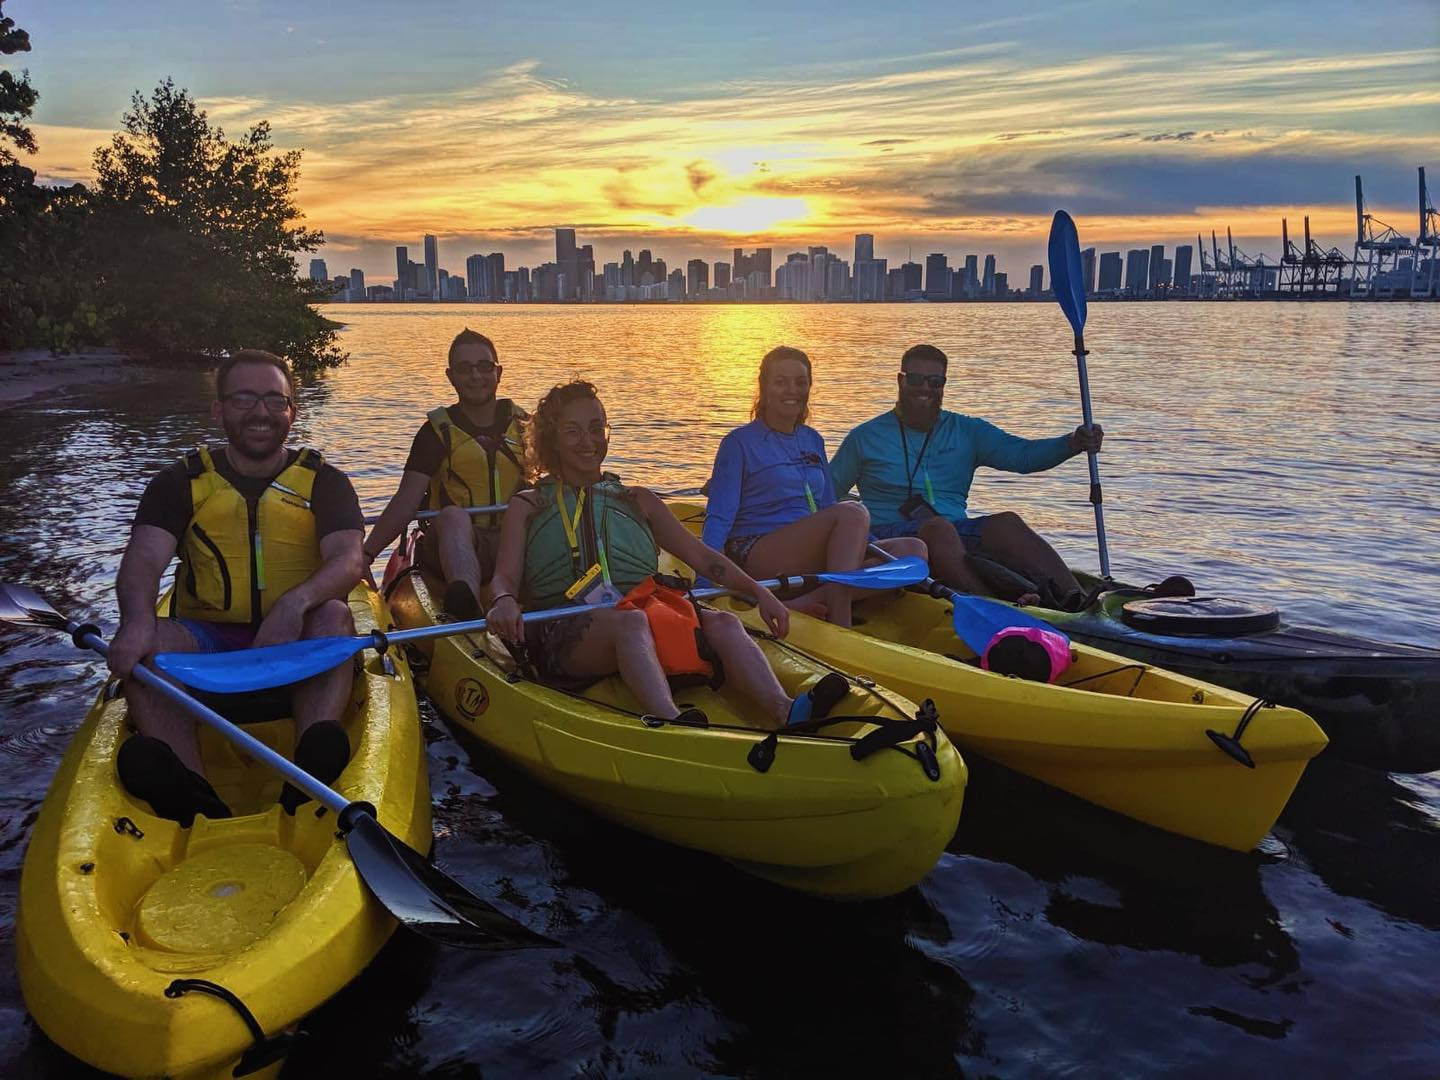 Sunset Kayak & Paddleboard Adventure Tours - Jan 16th, 23rd, and 30th